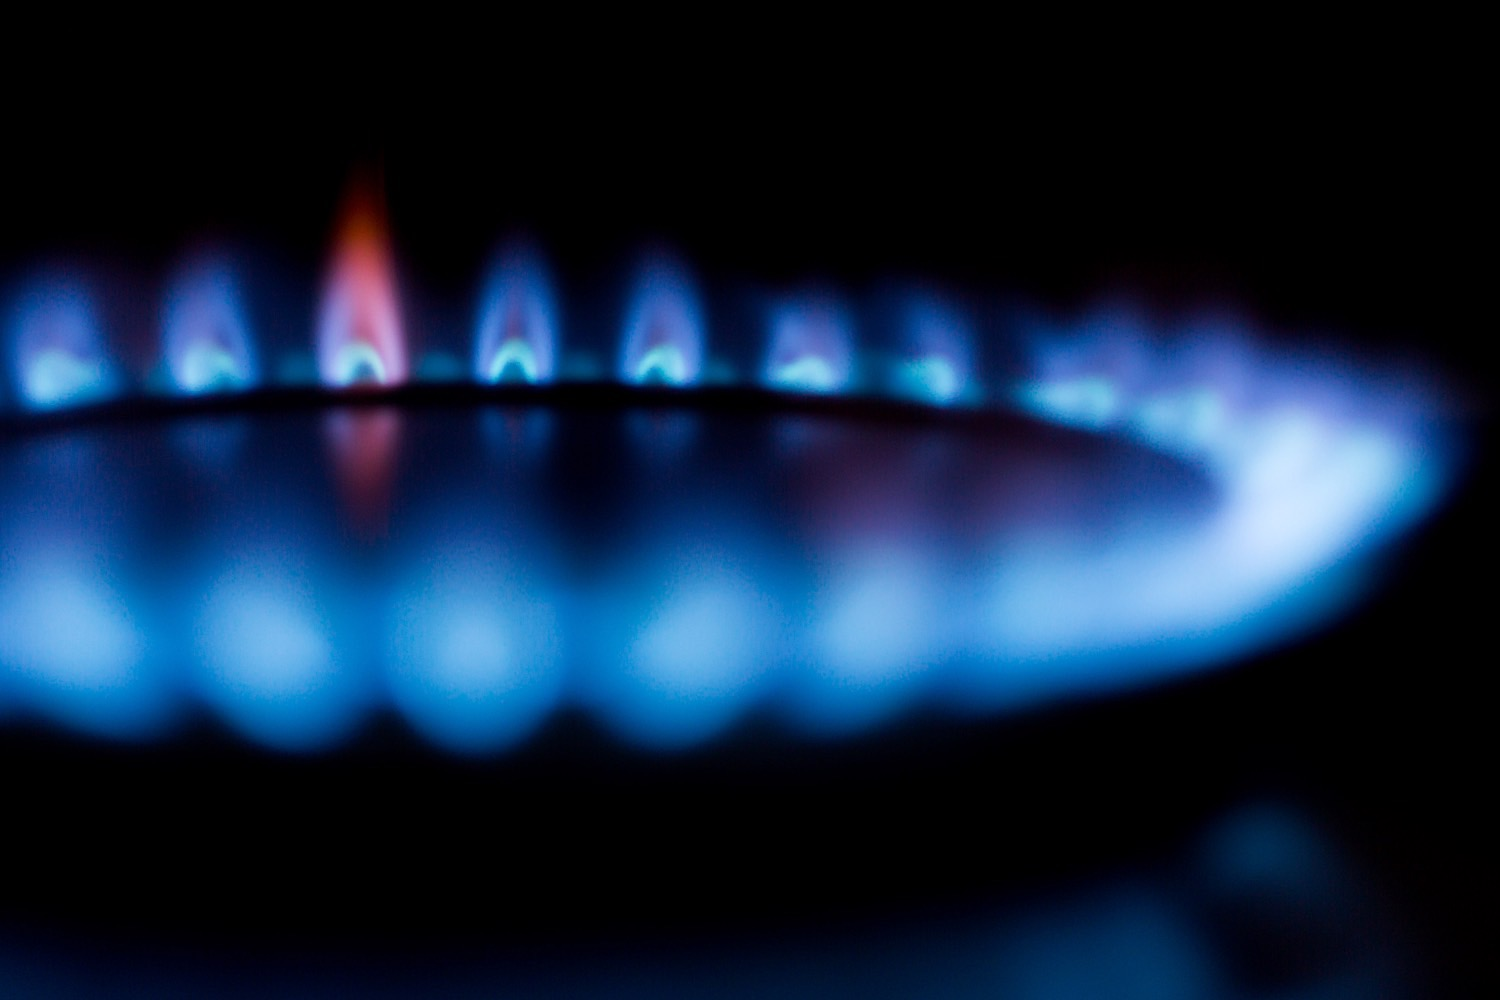 gas flame image